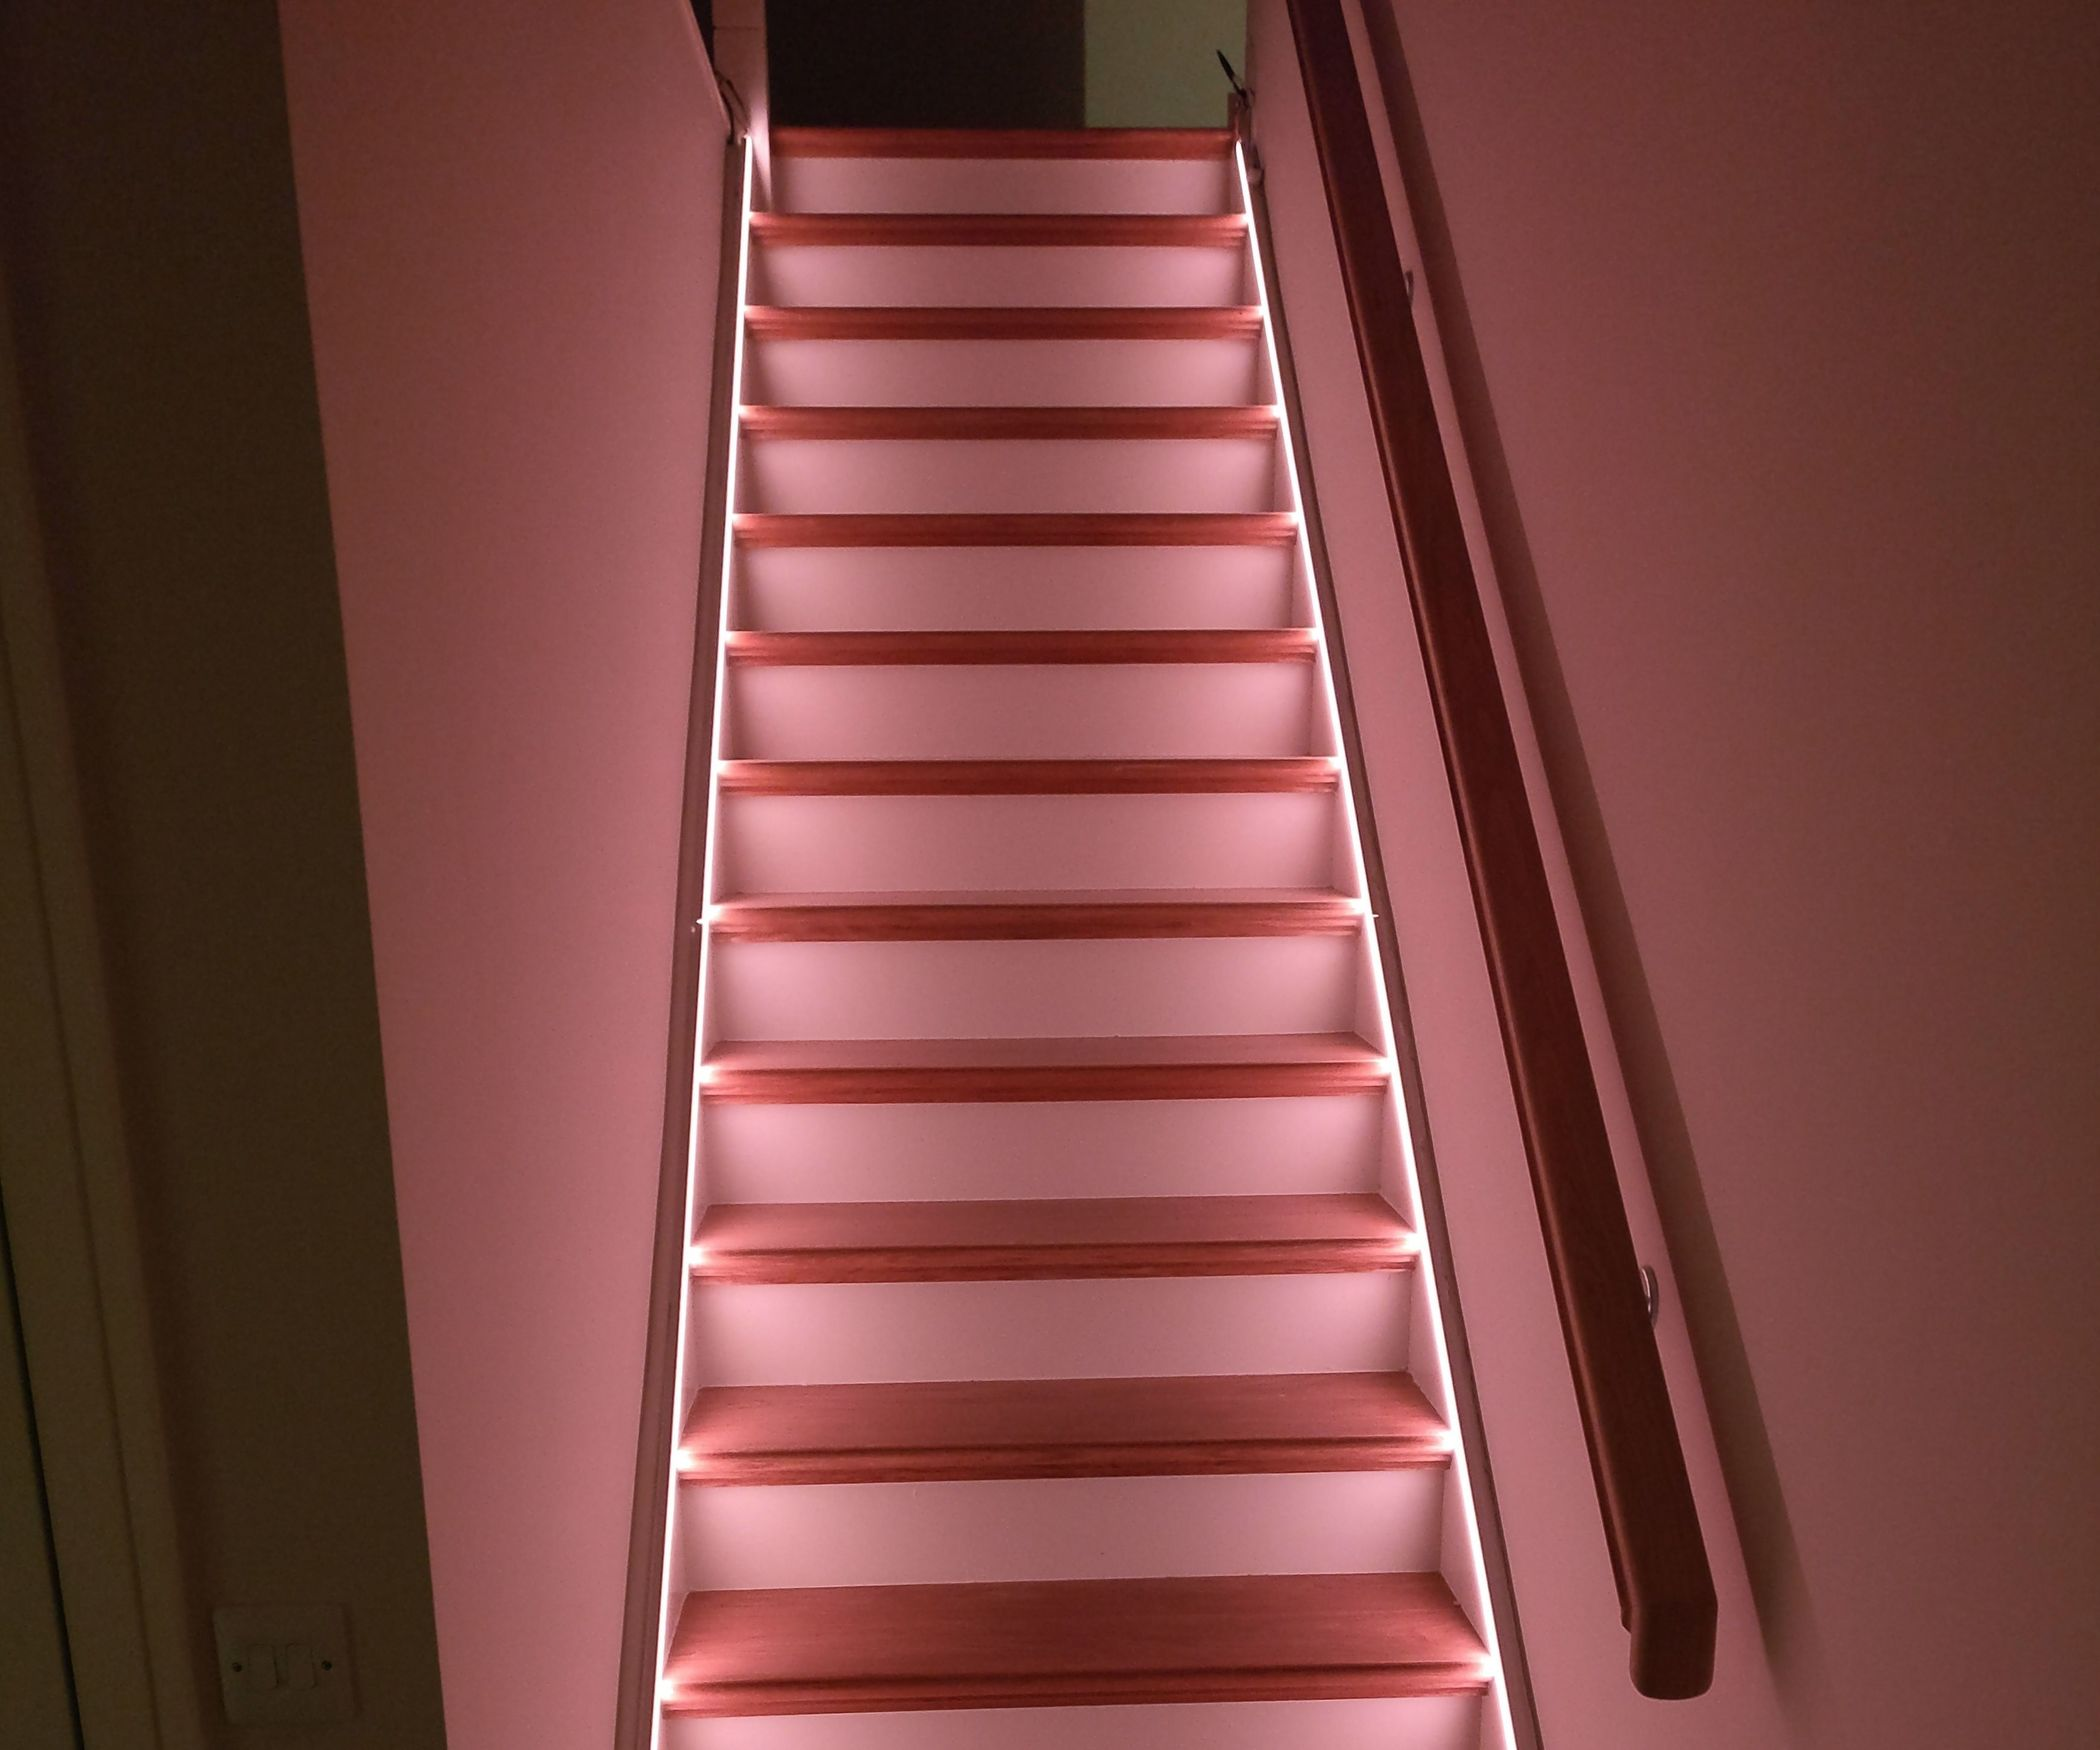 Automatic IoT Staircase Glowing Lighting